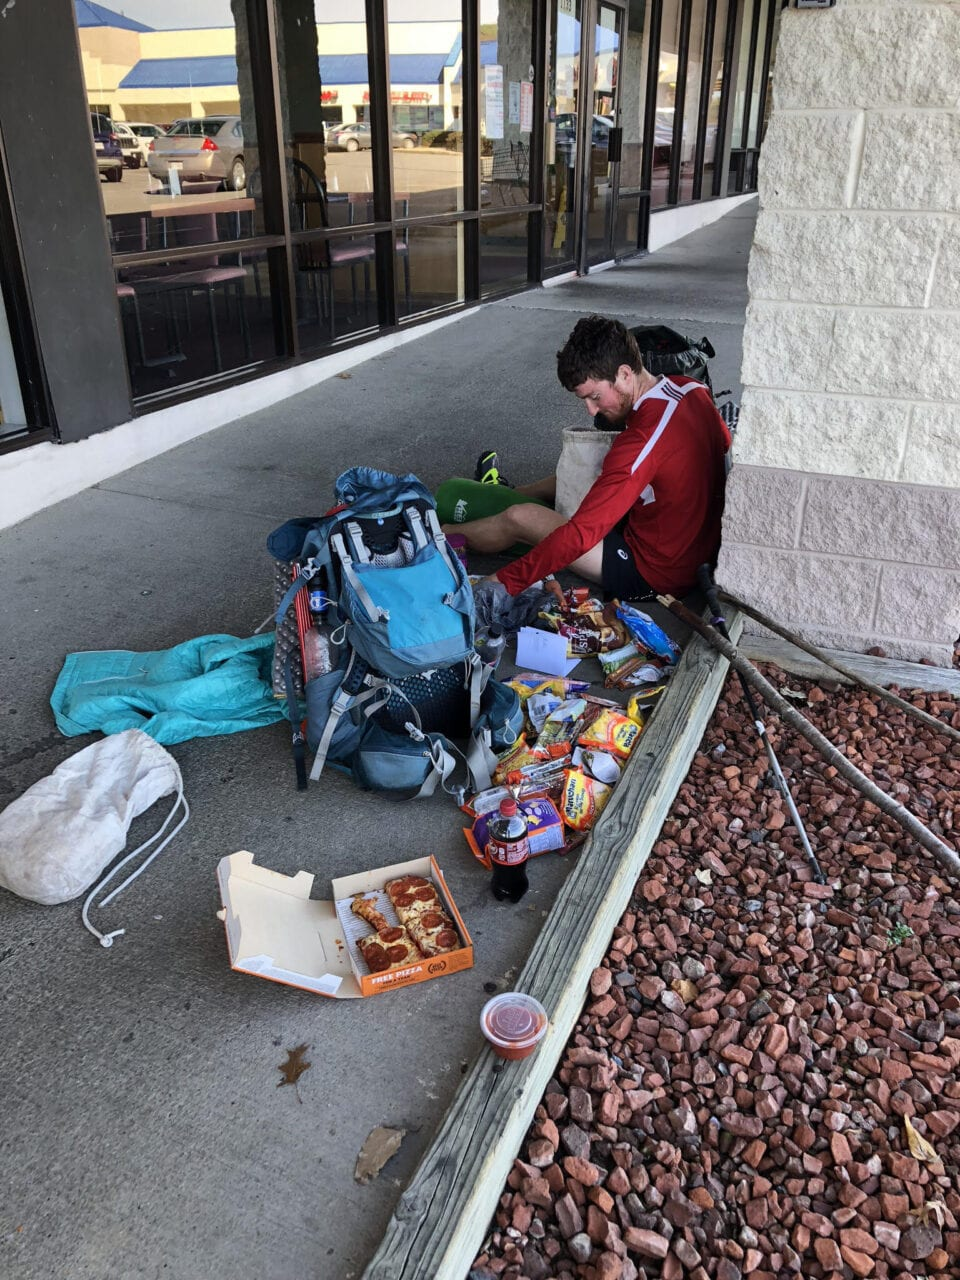 A thru-hiker sits on the ground eating with food spread out on the floor.